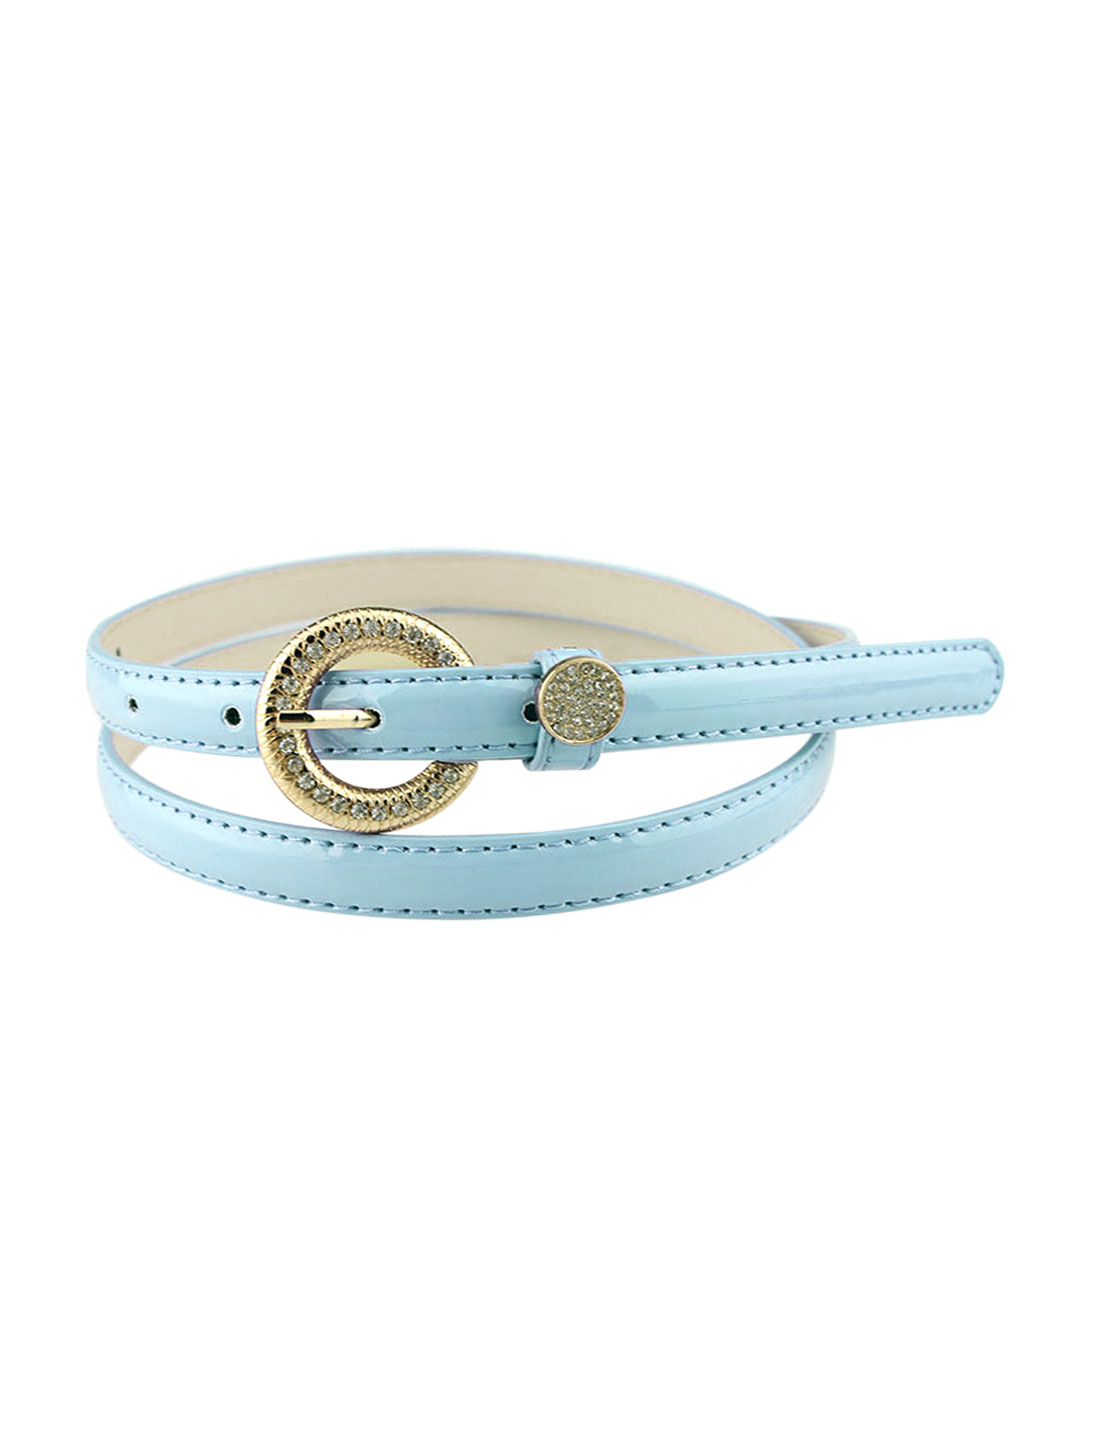 Women Rhinestone Decor Single Pin Buckle Waist Belt Light Blue